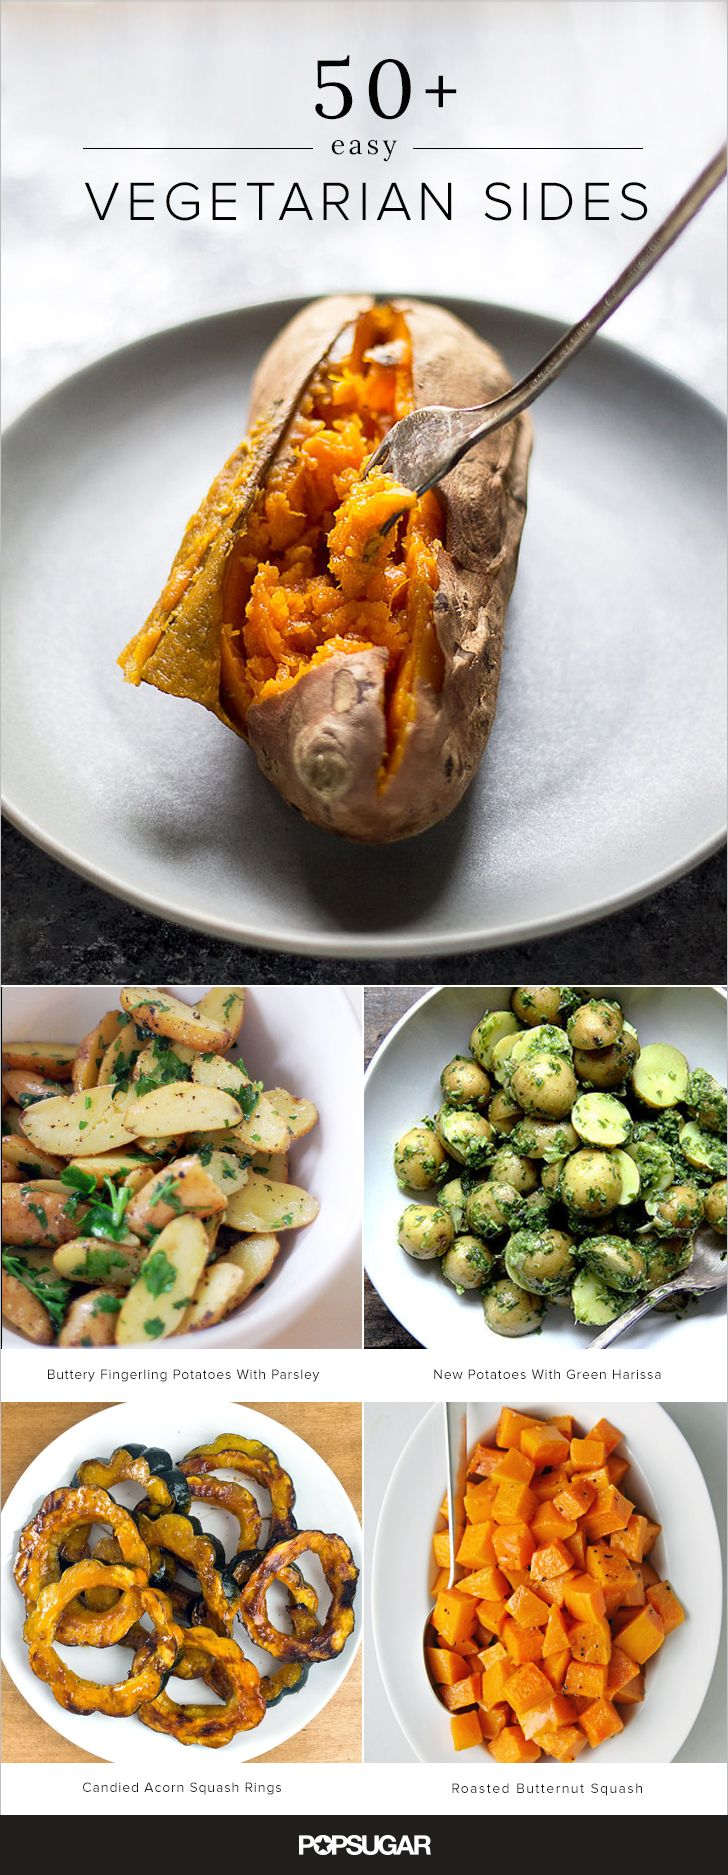 More Than 60 Easy Vegetarian Sides is part of cooking Vegetarian Dishes - Unless you're cooking a onepot or pan dinner, chances are you could use some side dish inspiration  Sure, you have your standbys, but sometimes it's fun to